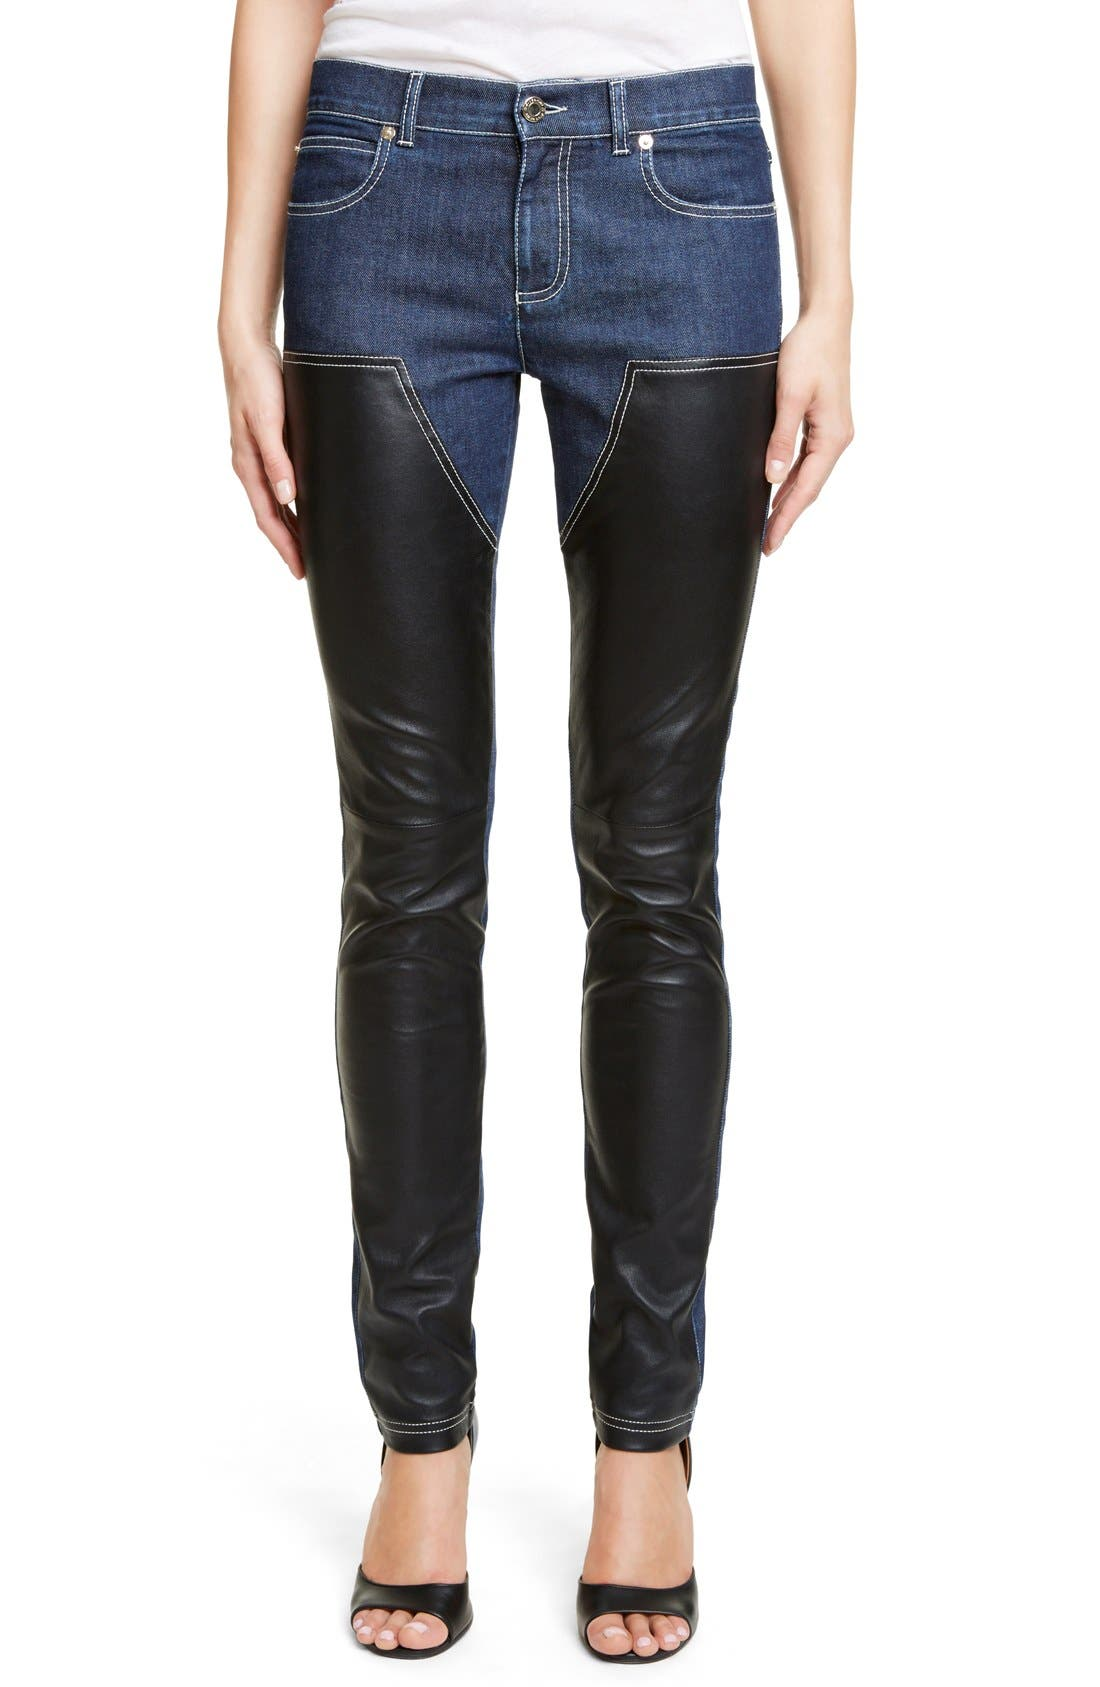 GIVENCHY Bonded Leather Trim Jeans